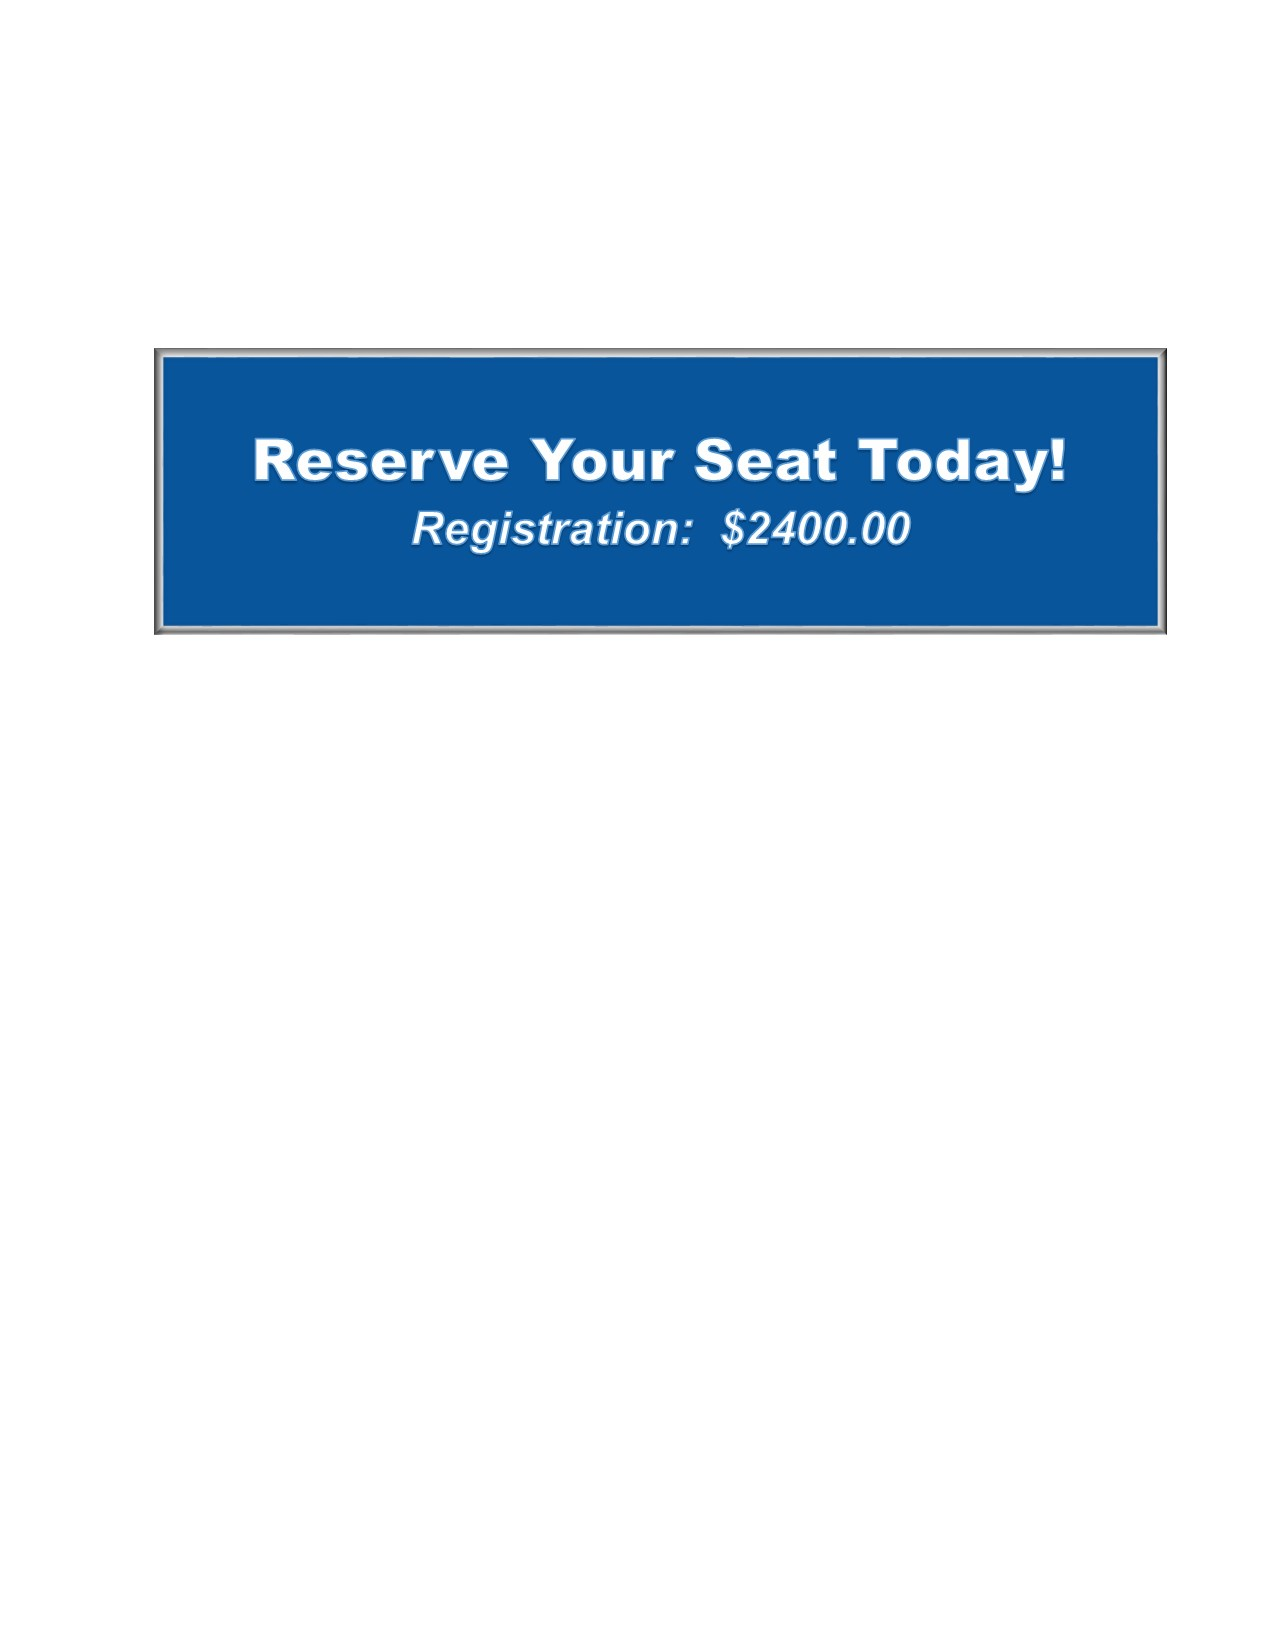 Reserve Your Seat Today!